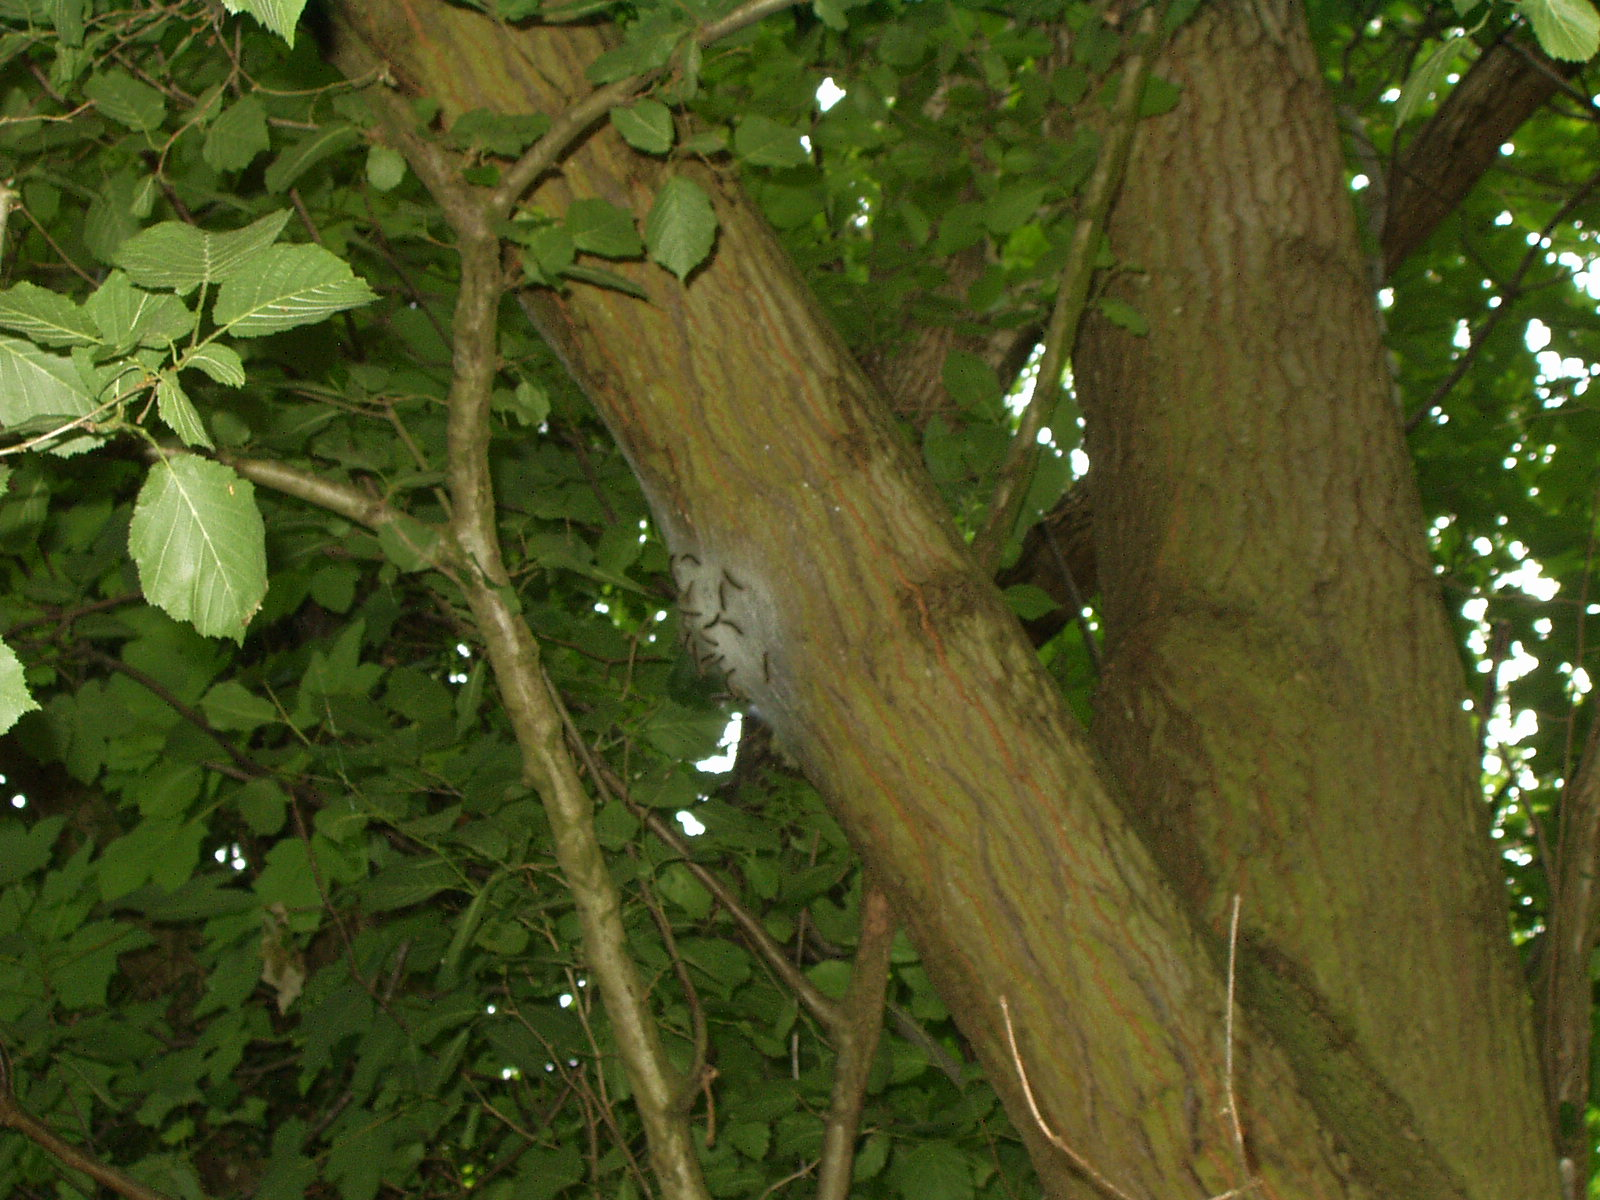 An Oak Processionary Moth nest, high in the canopy of a tree